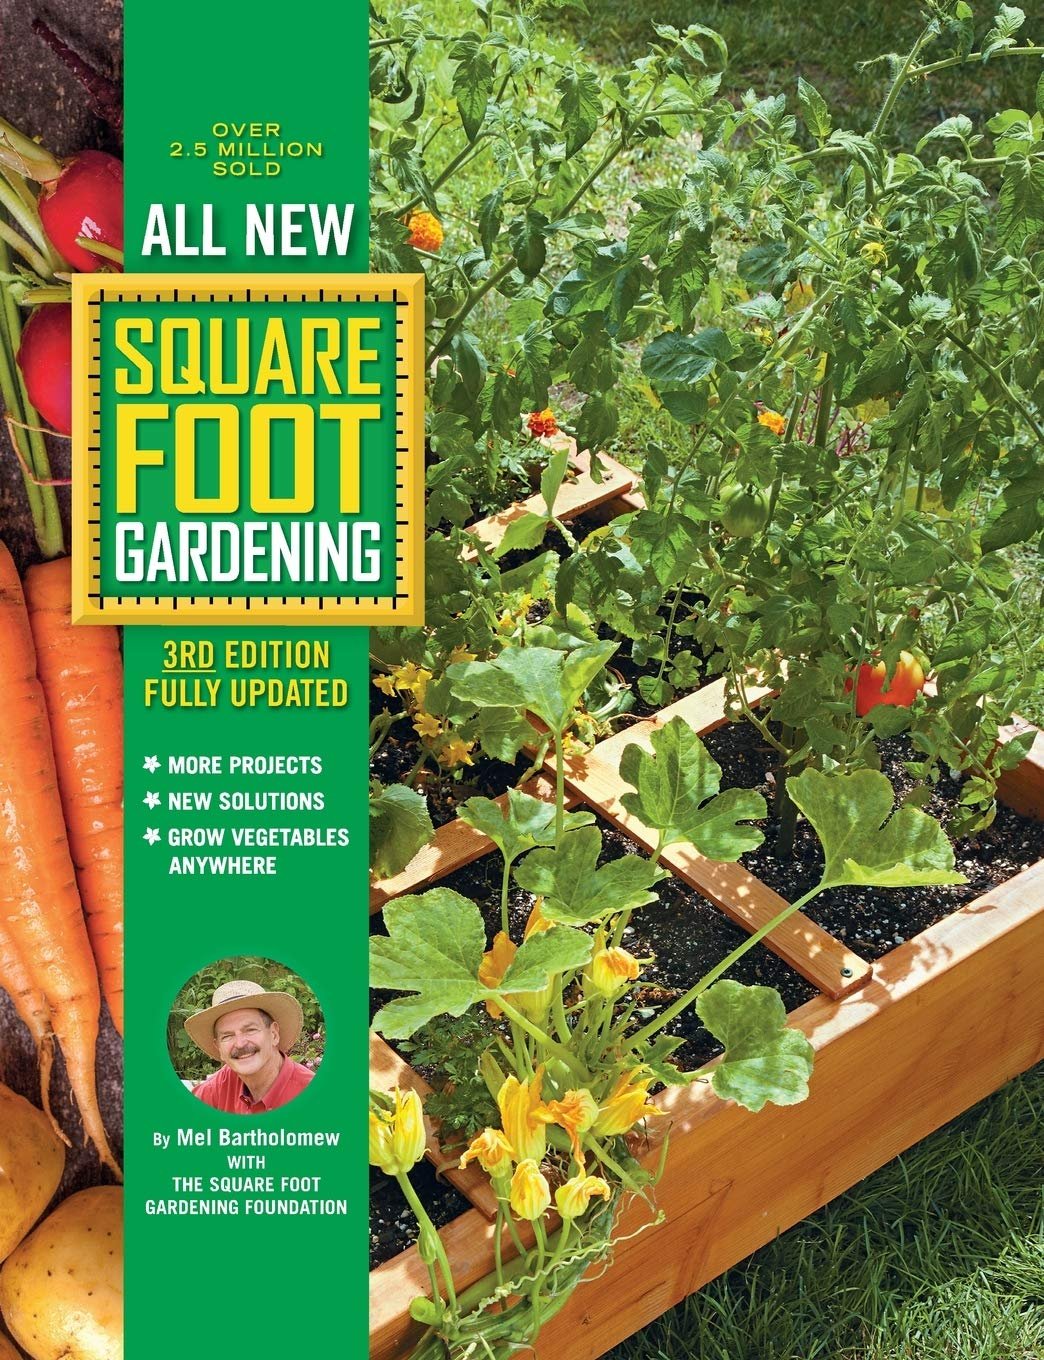 Image OfAll New Square Foot Gardening: More Projects - New Solutions - Grow Vegetables Anywhere